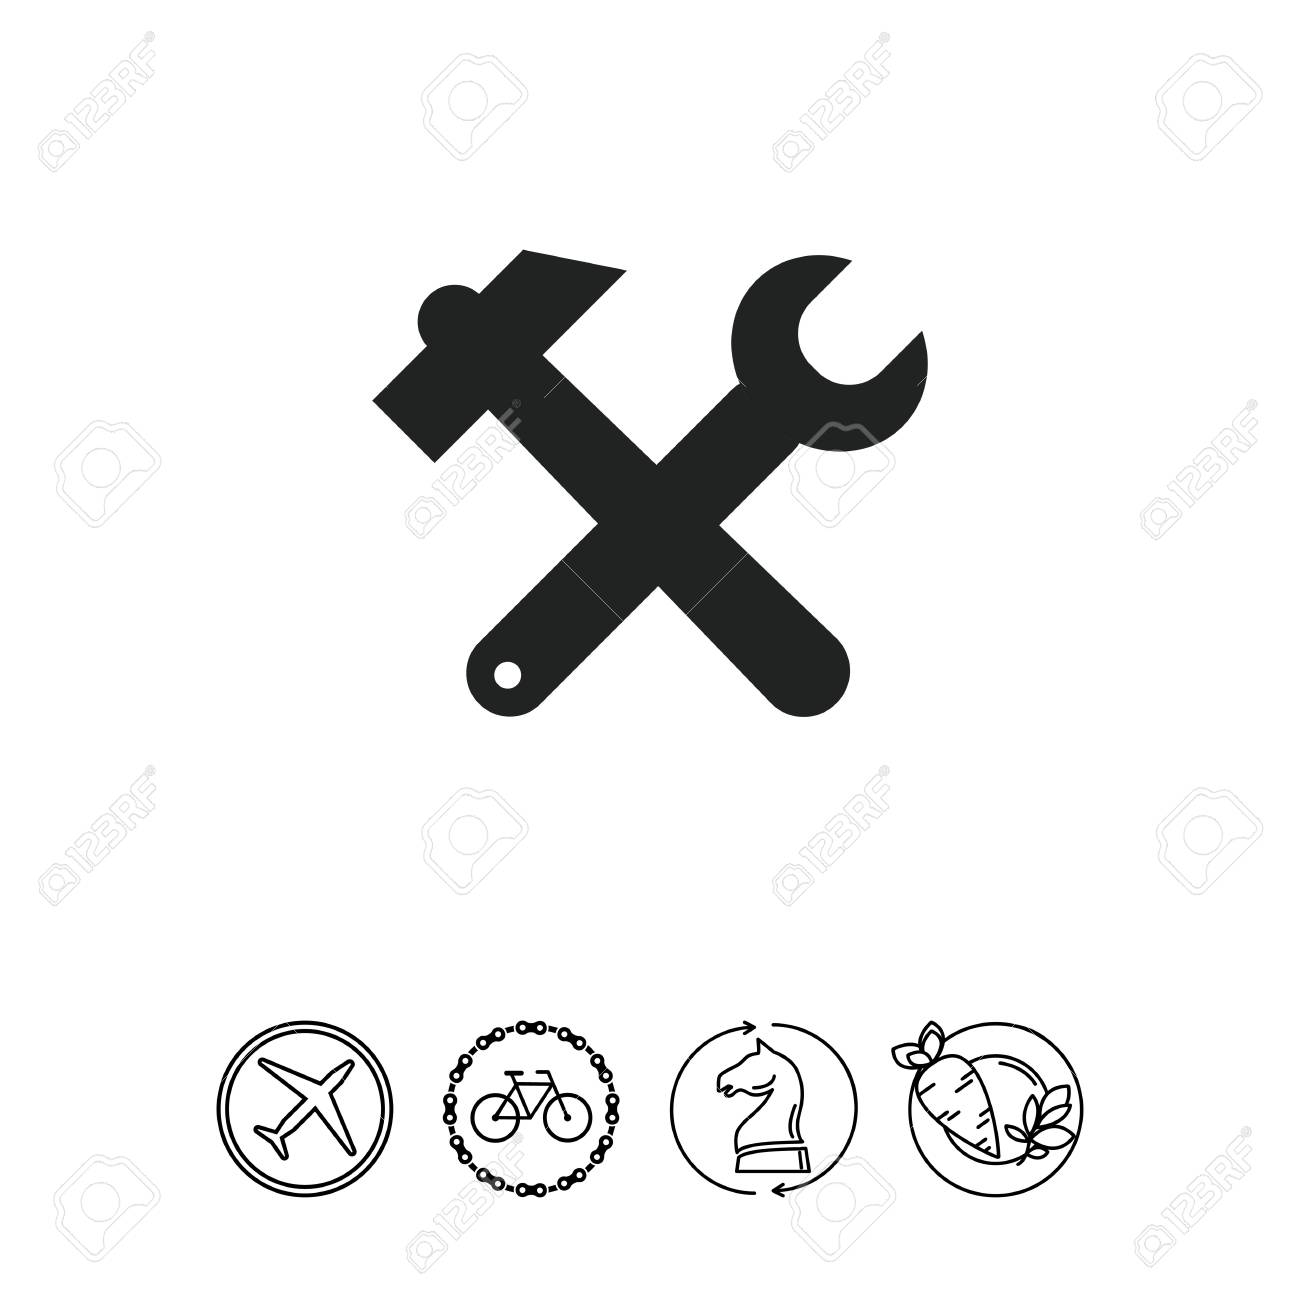 Icon Of Crossed Hammer And Spanner Royalty Free Cliparts Vectors